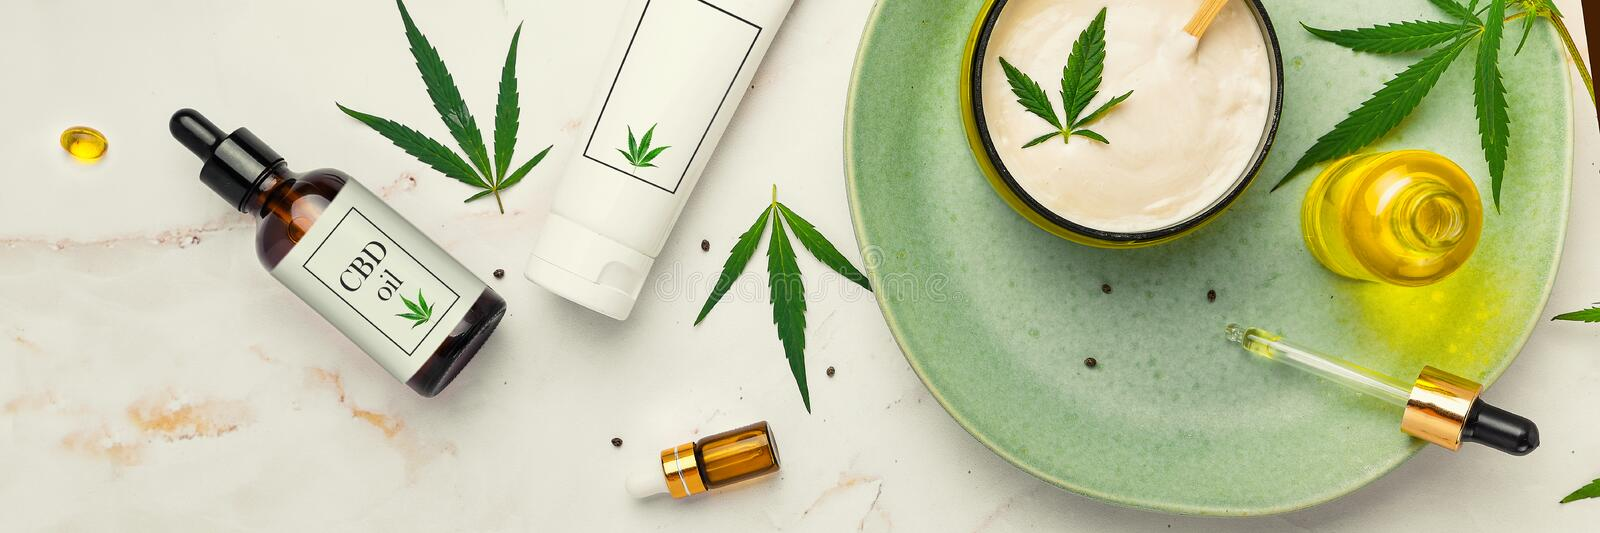 Cosmetics with cannabis oil on a turquoise plate on a light marble background. Concept of luxury skin care. Banner. Cosmetics with cannabis oil on a turquoise stock photography